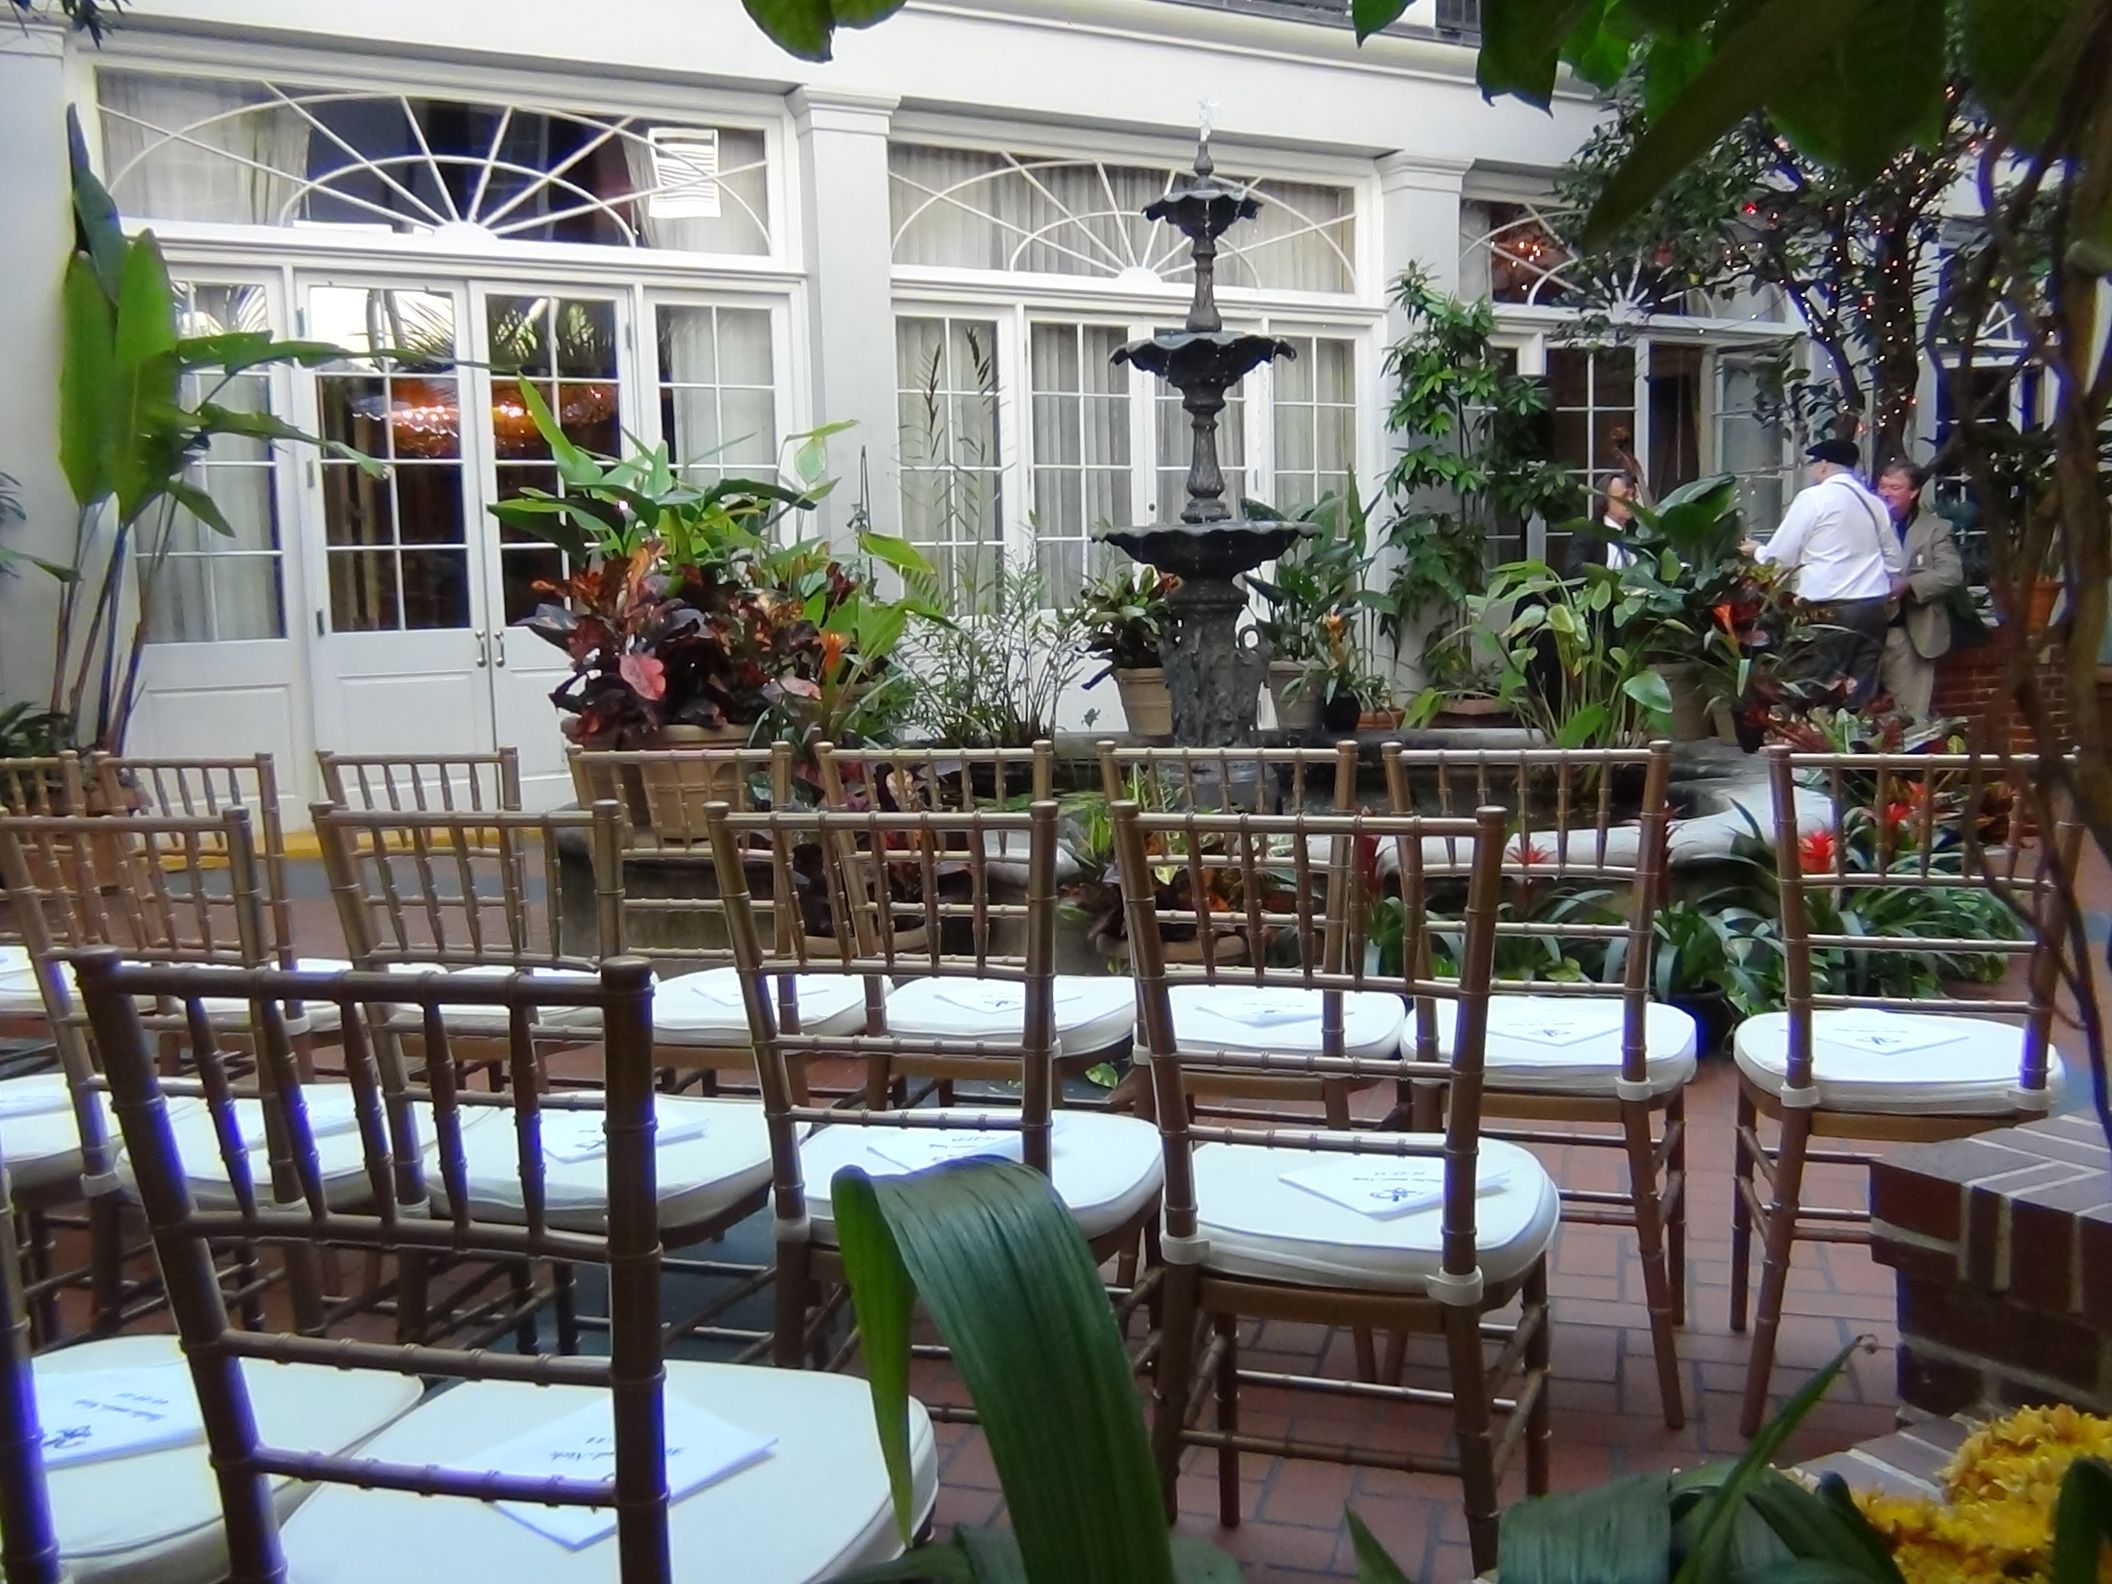 Seating in the courtyard at the Royal Sonesta Hotel New Orleans.